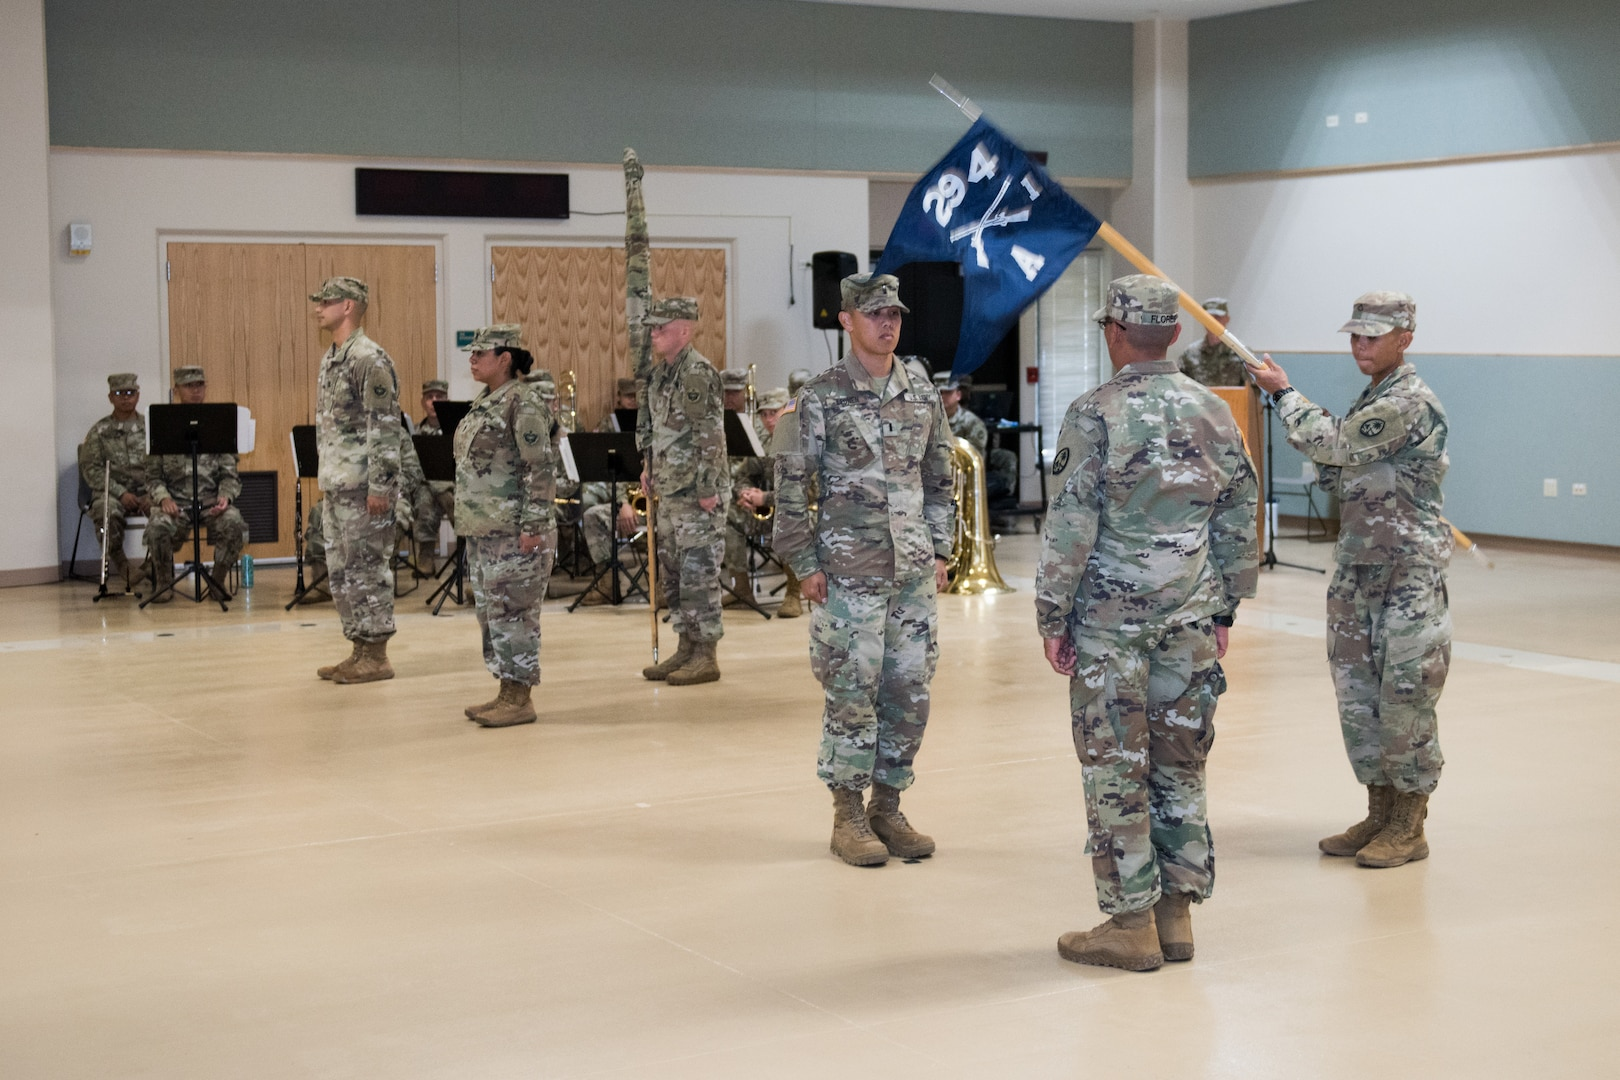 Army National Guard Director Visits Citizen-Soldiers of the Pacific